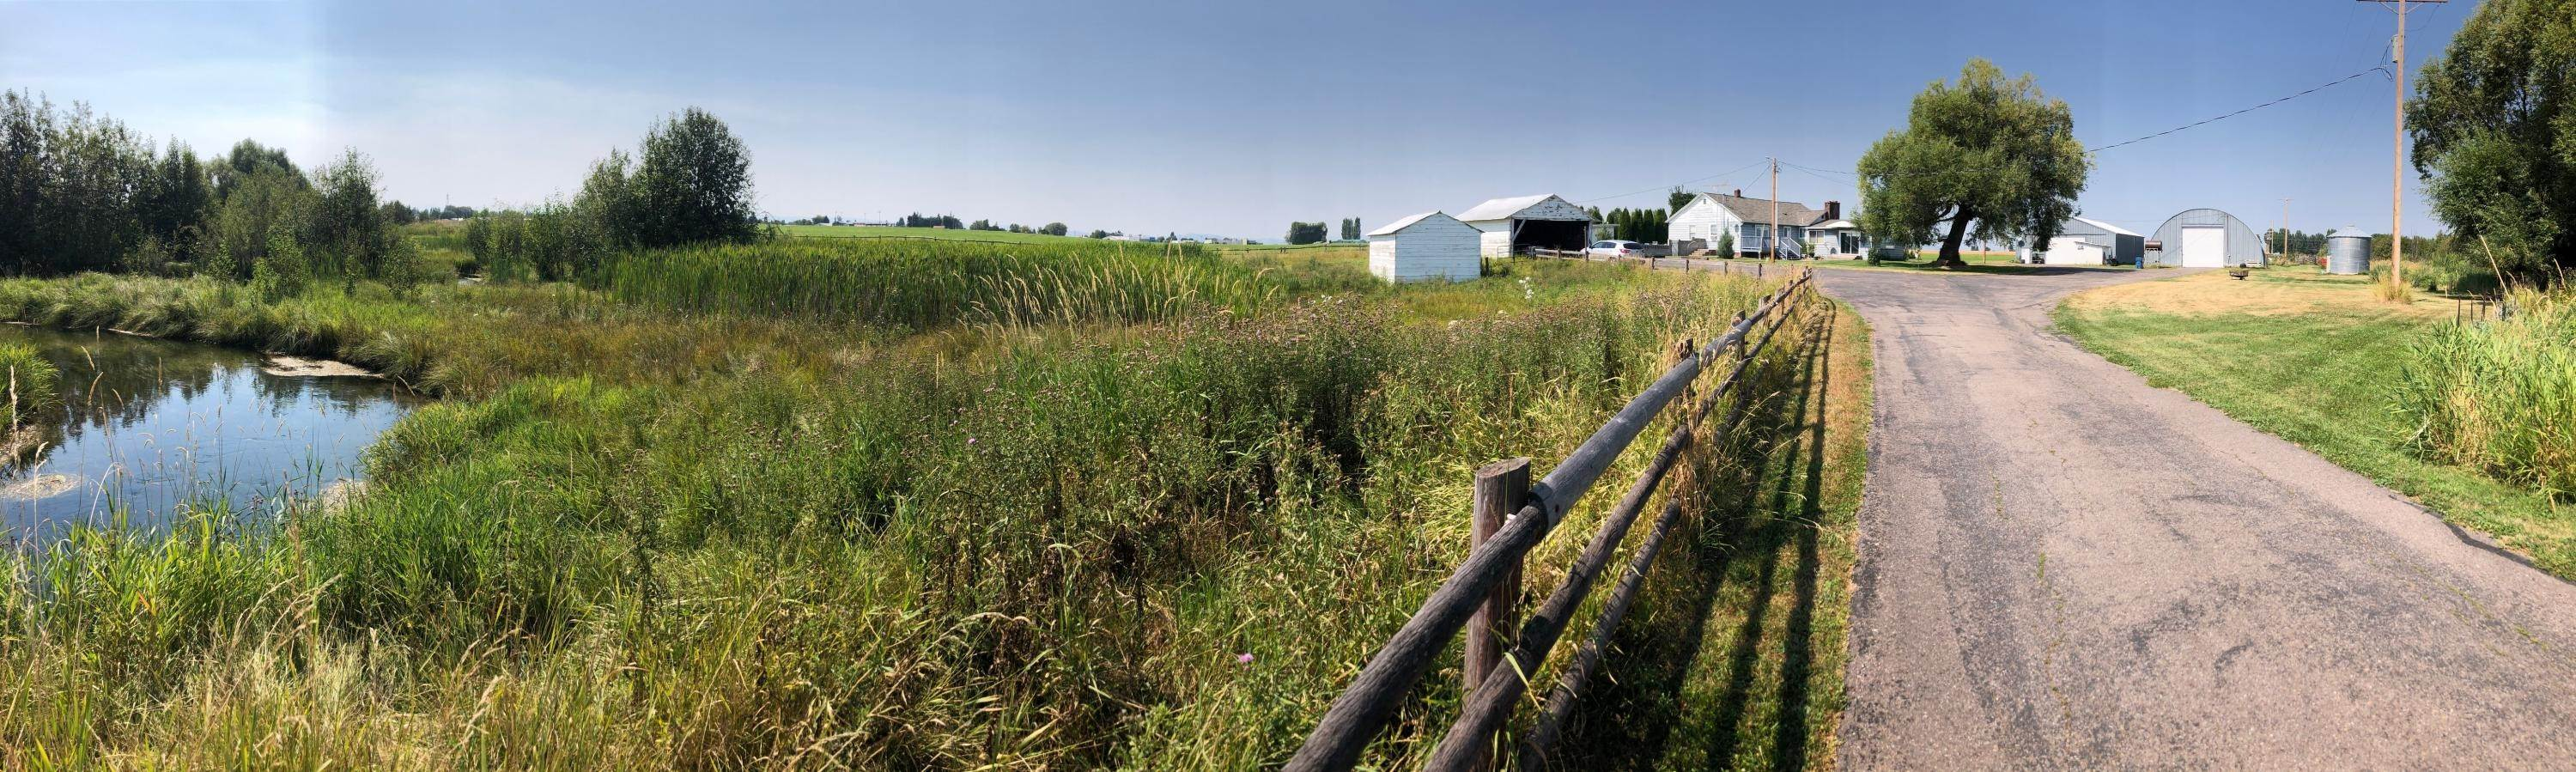 Farm / Agriculture for Sale at Address Not Available Ronan, Montana 59864 United States